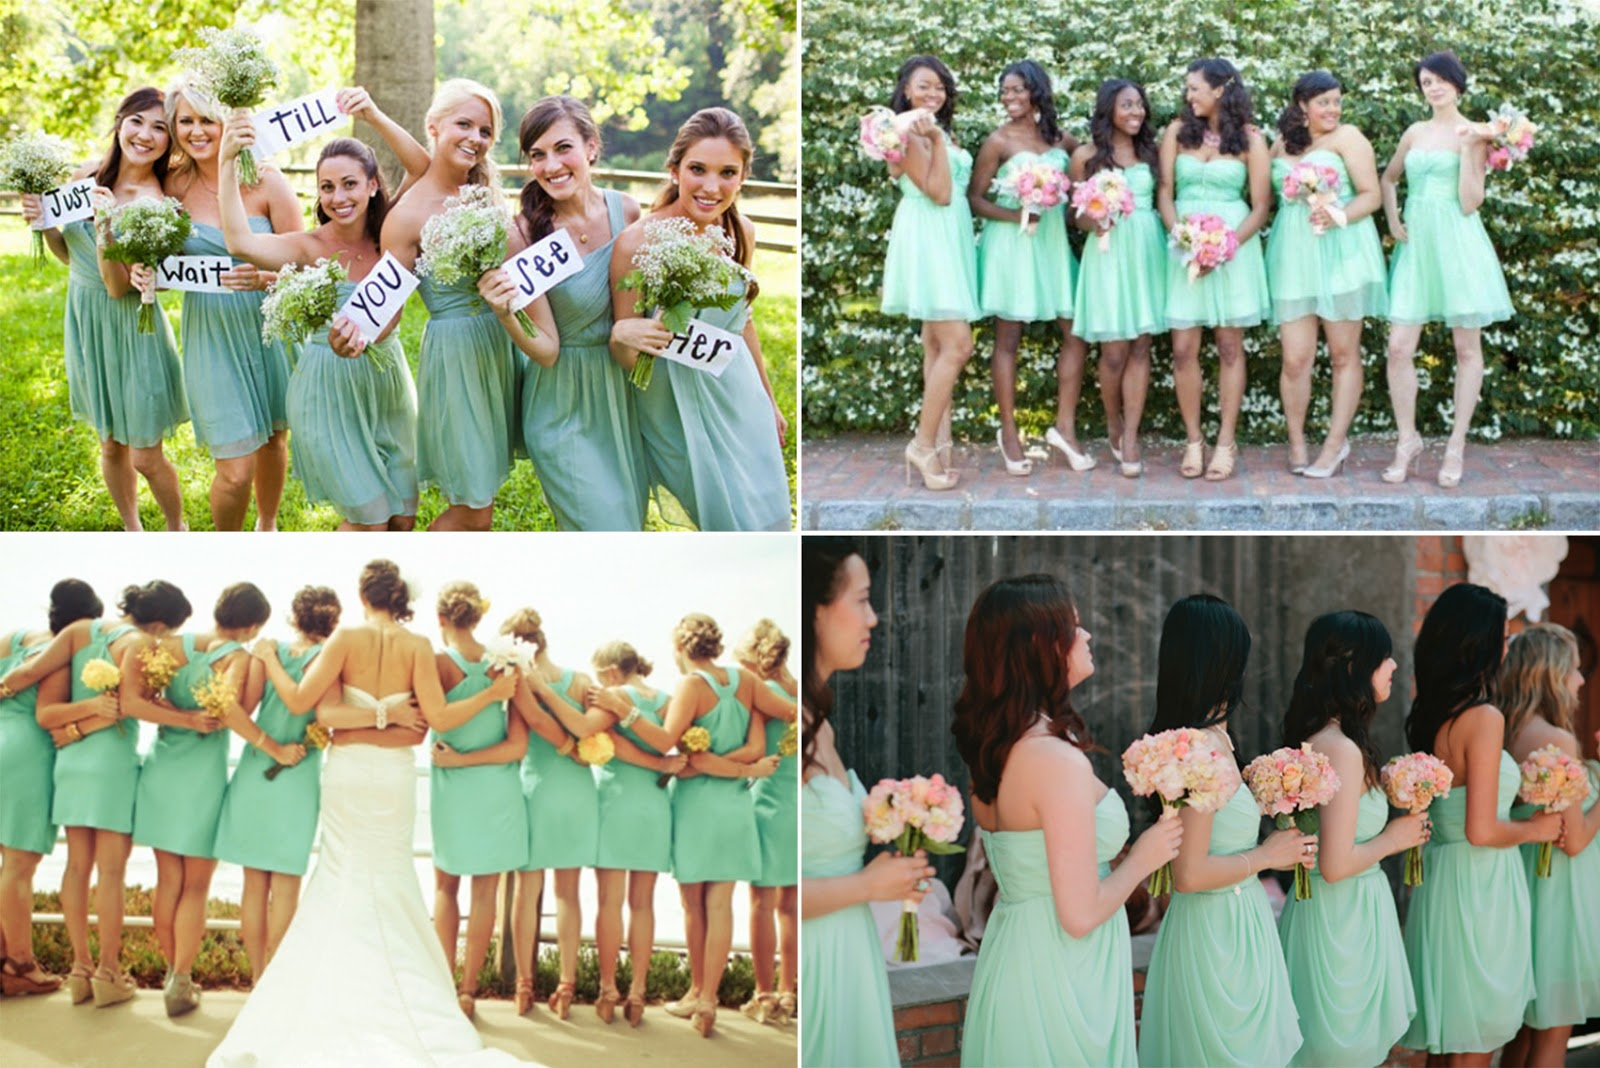 Prom dress 2014 if you love white wedding dress better than mint wedding dressmint bridesmaid dresses are necessary for your weddingwhatever long or short bridesamaid ombrellifo Choice Image